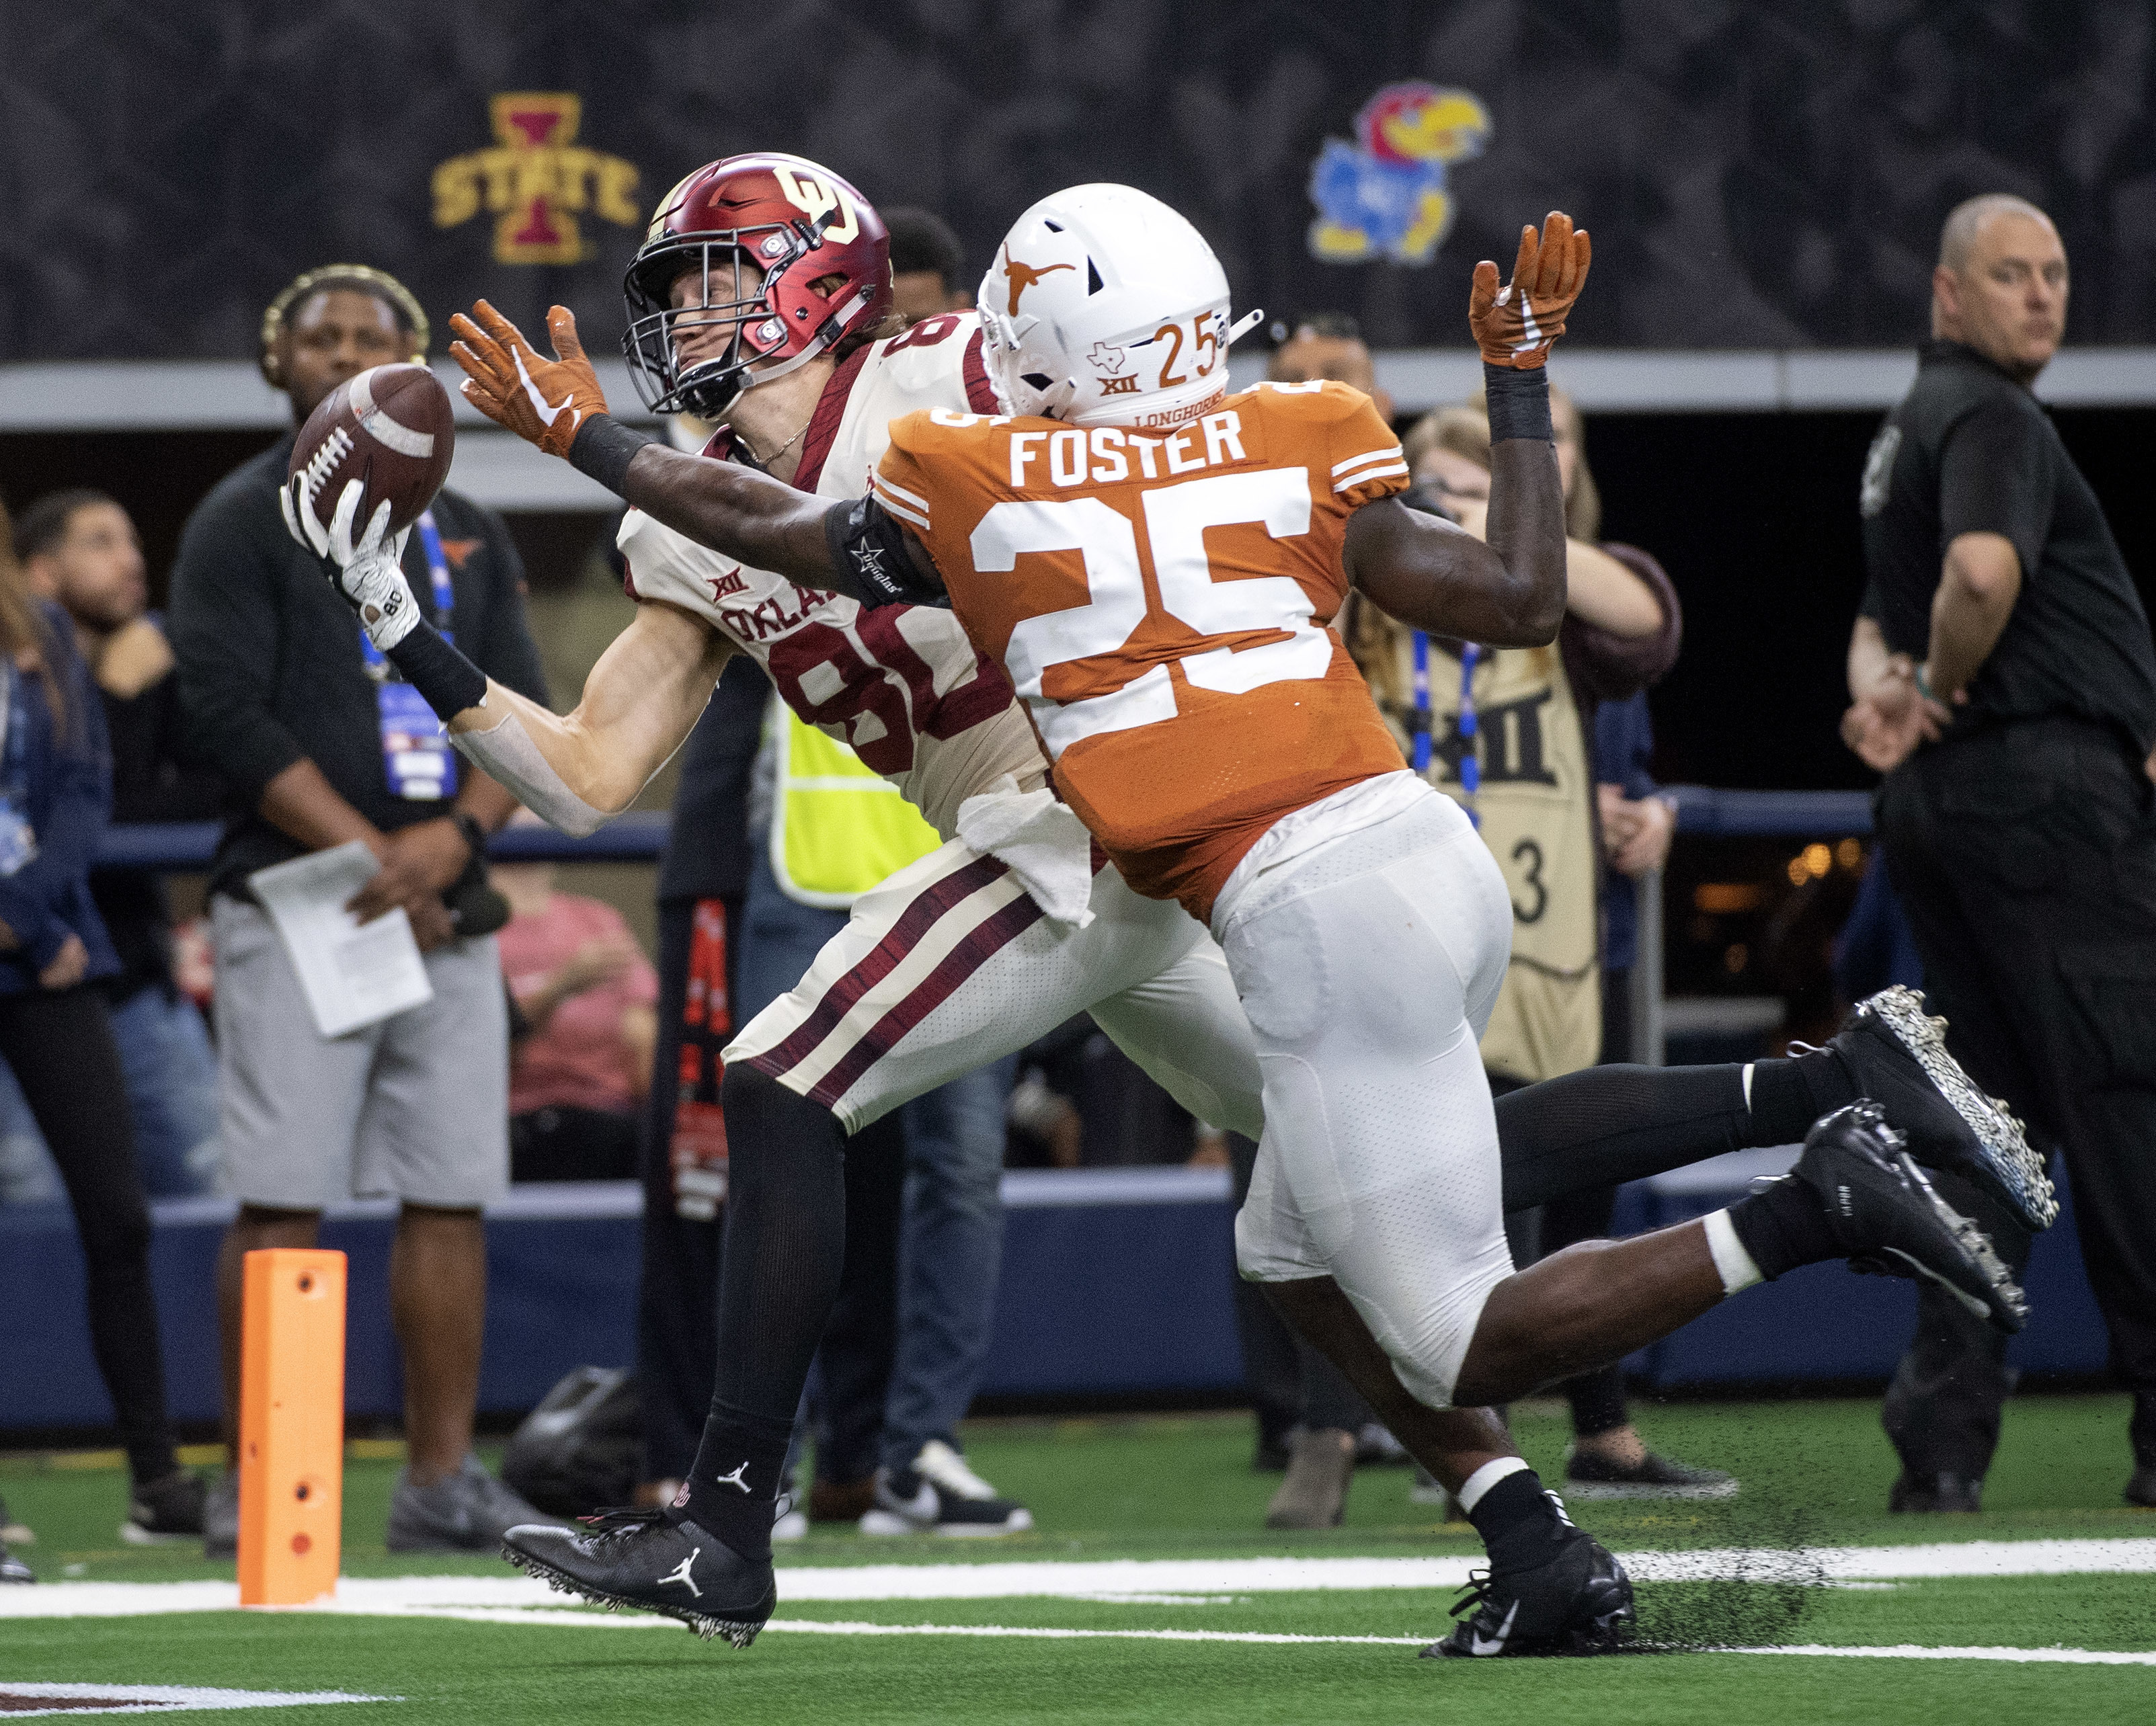 Oklahoma tight end Grant Calcaterra (80) hauls in a one-handed touchdown catch in front of Texas defensive back B.J. Foster (25) during the second half of the Big 12 Conference championship NCAA college football game on Saturday, Dec. 1, 2018, in Arlington, Texas. Calcaterra's touchdown sealed Oklahoma's 39-27 win. (AP Photo/Jeffrey McWhorter)